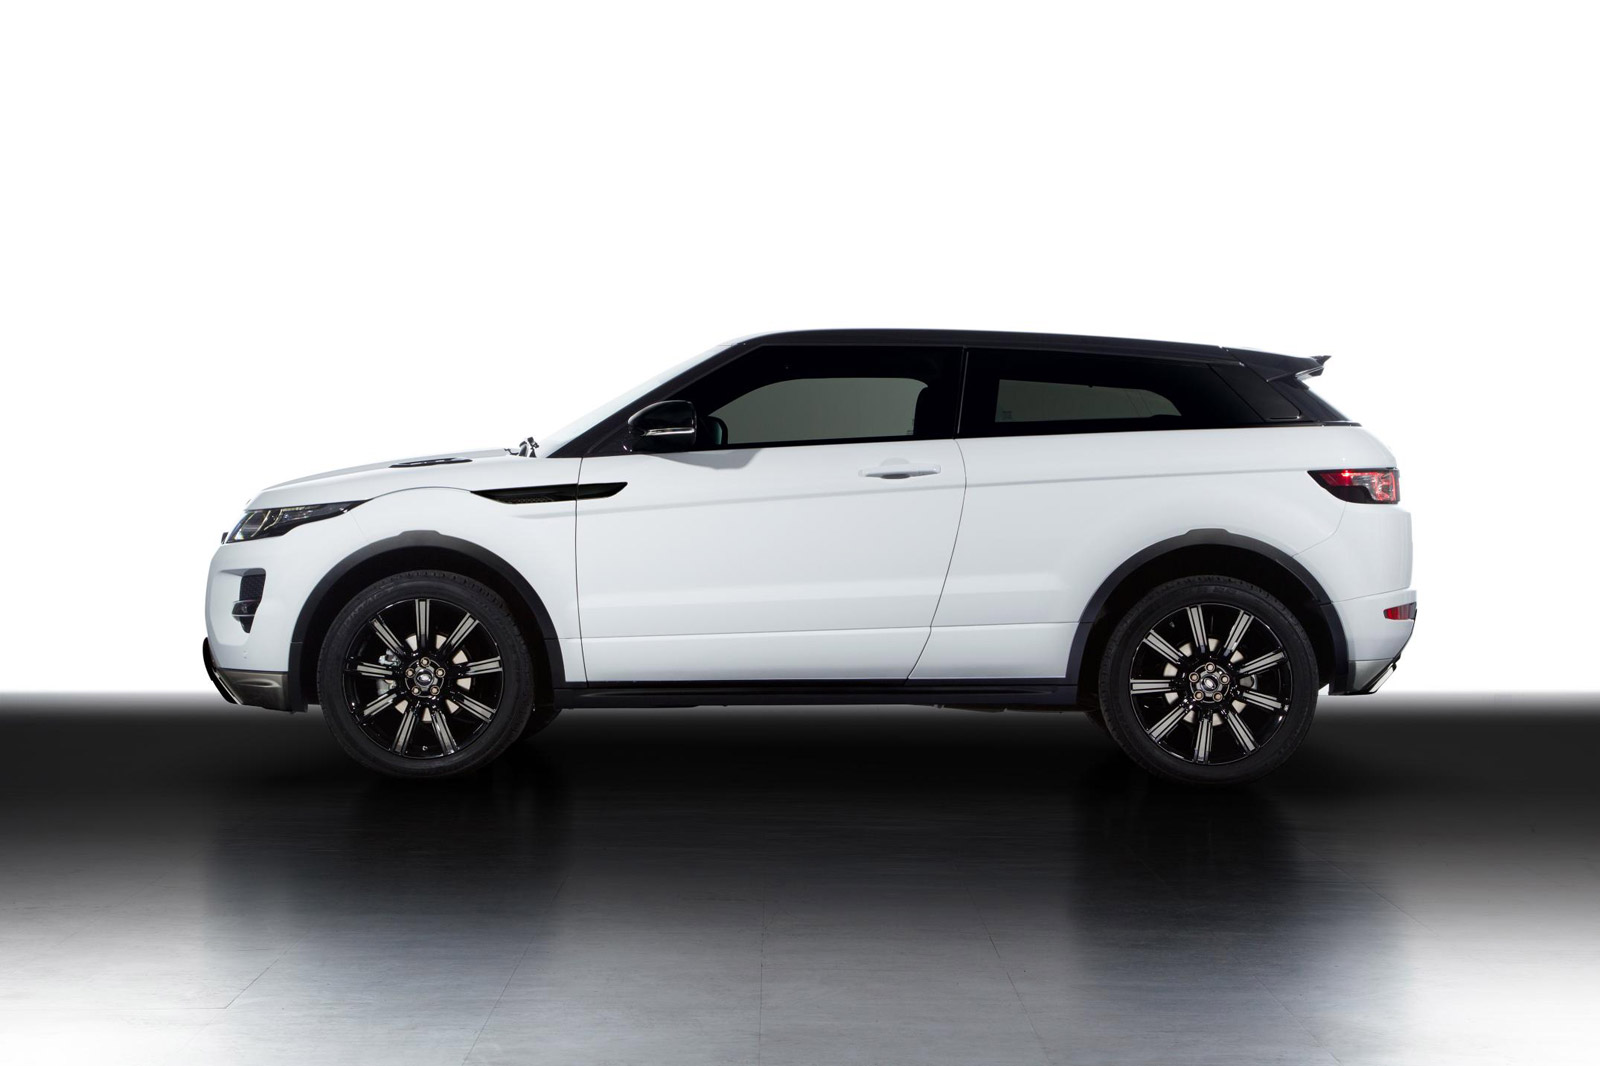 2013 land rover range rover evoque review ratings specs prices and photos the car connection. Black Bedroom Furniture Sets. Home Design Ideas